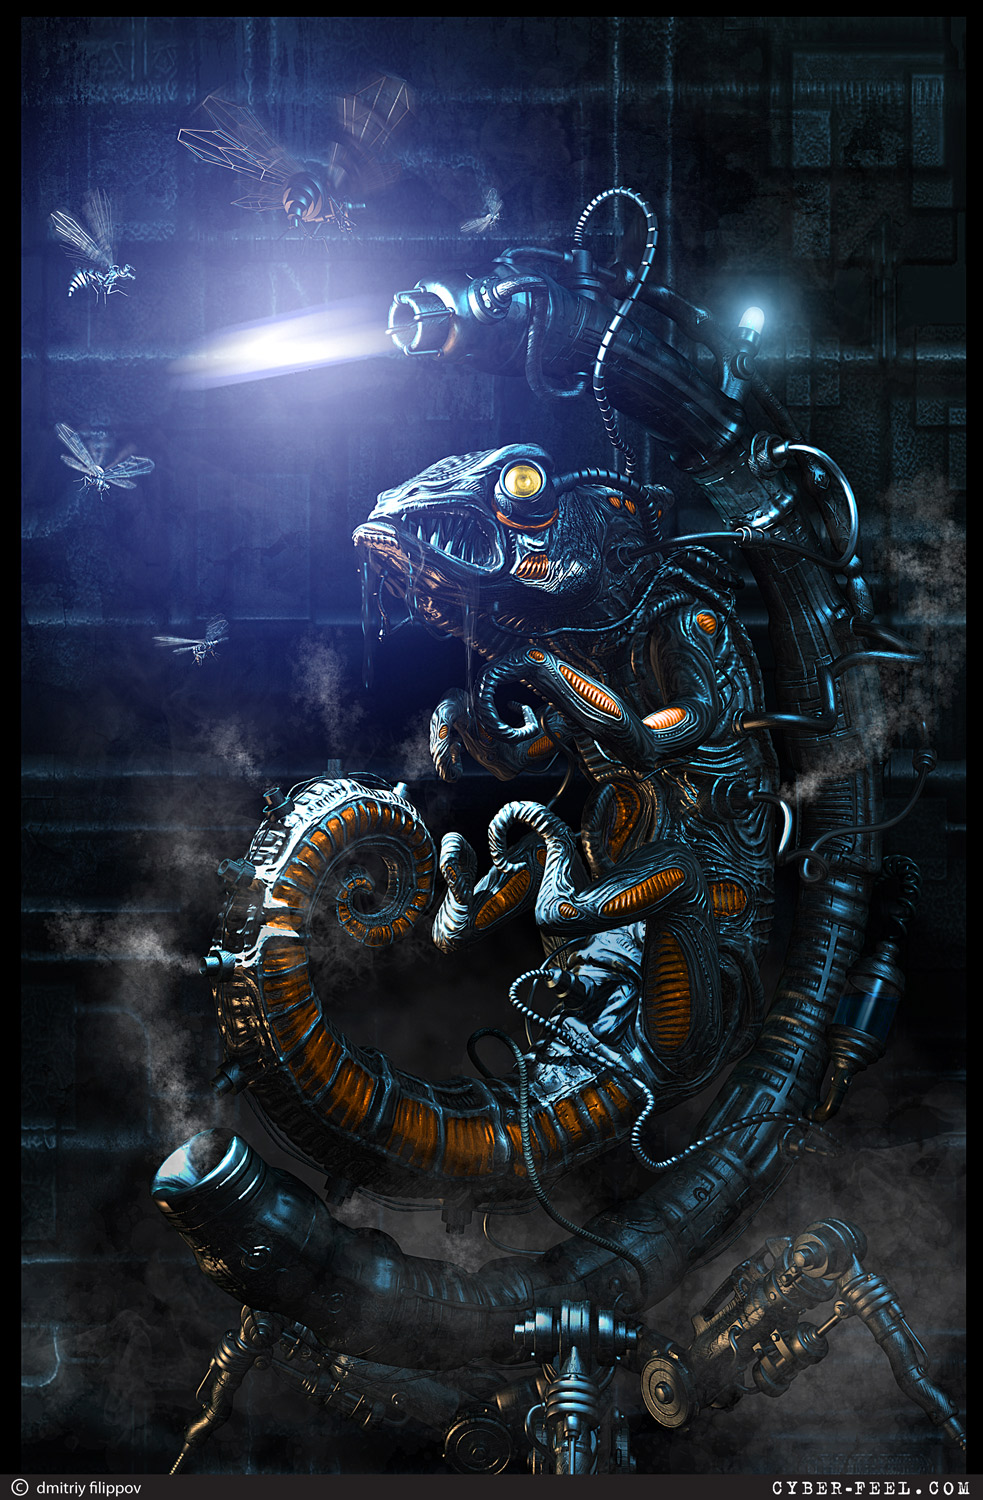 12-Hunting-Dmitry-Filippov-Steampunk-Digital-Art-with-the-Zodiac-www-designstack-co